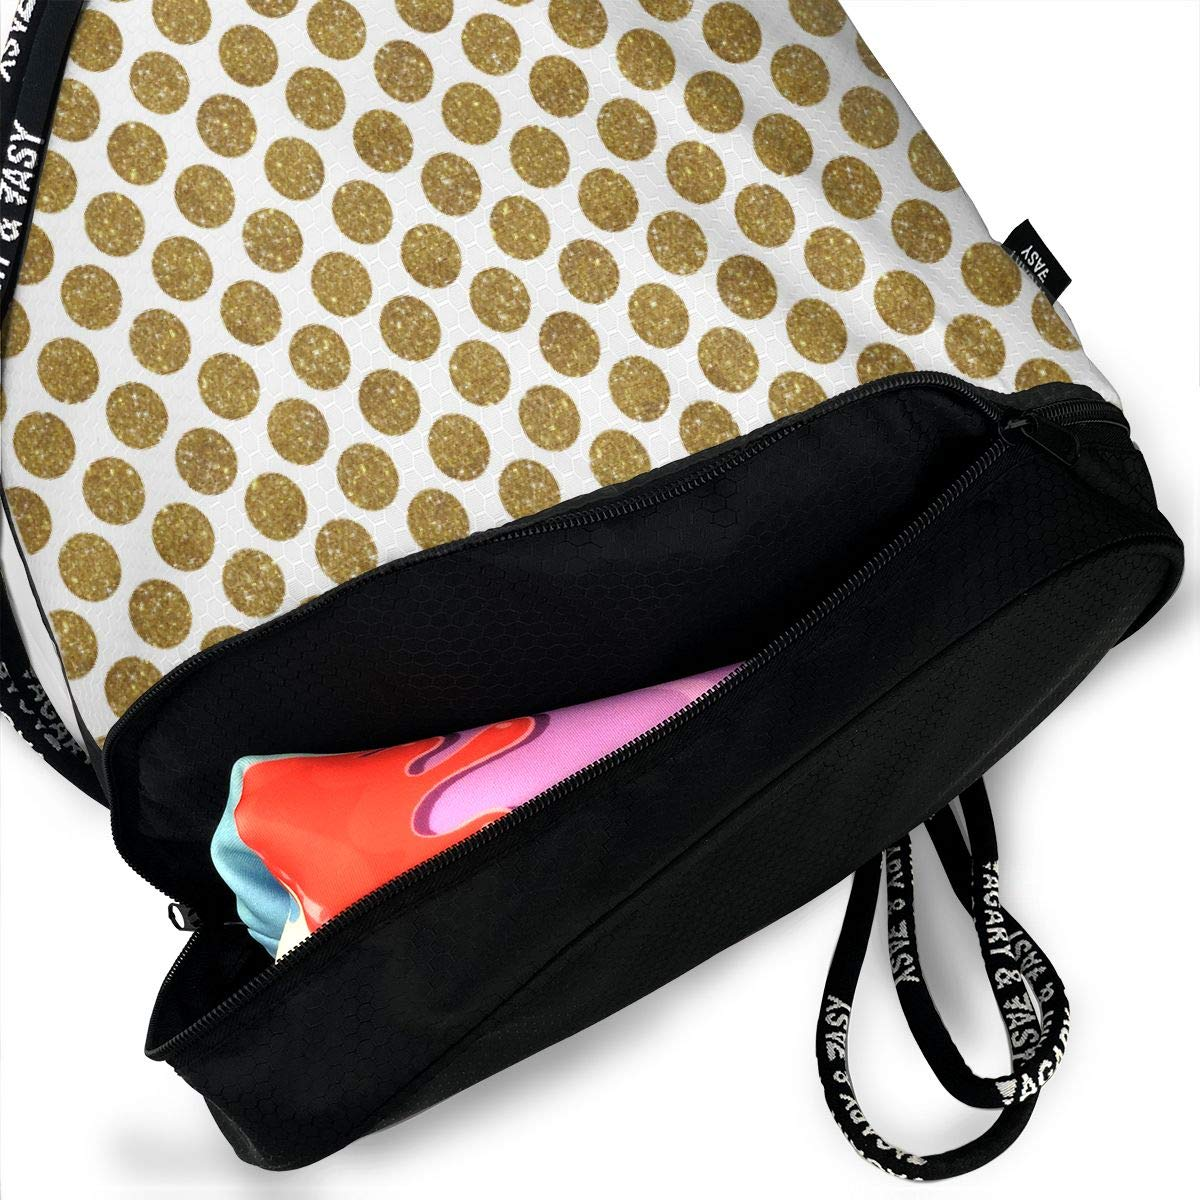 Glitter Dot Gold Drawstring Backpack Sports Athletic Gym Cinch Sack String Storage Bags for Hiking Travel Beach